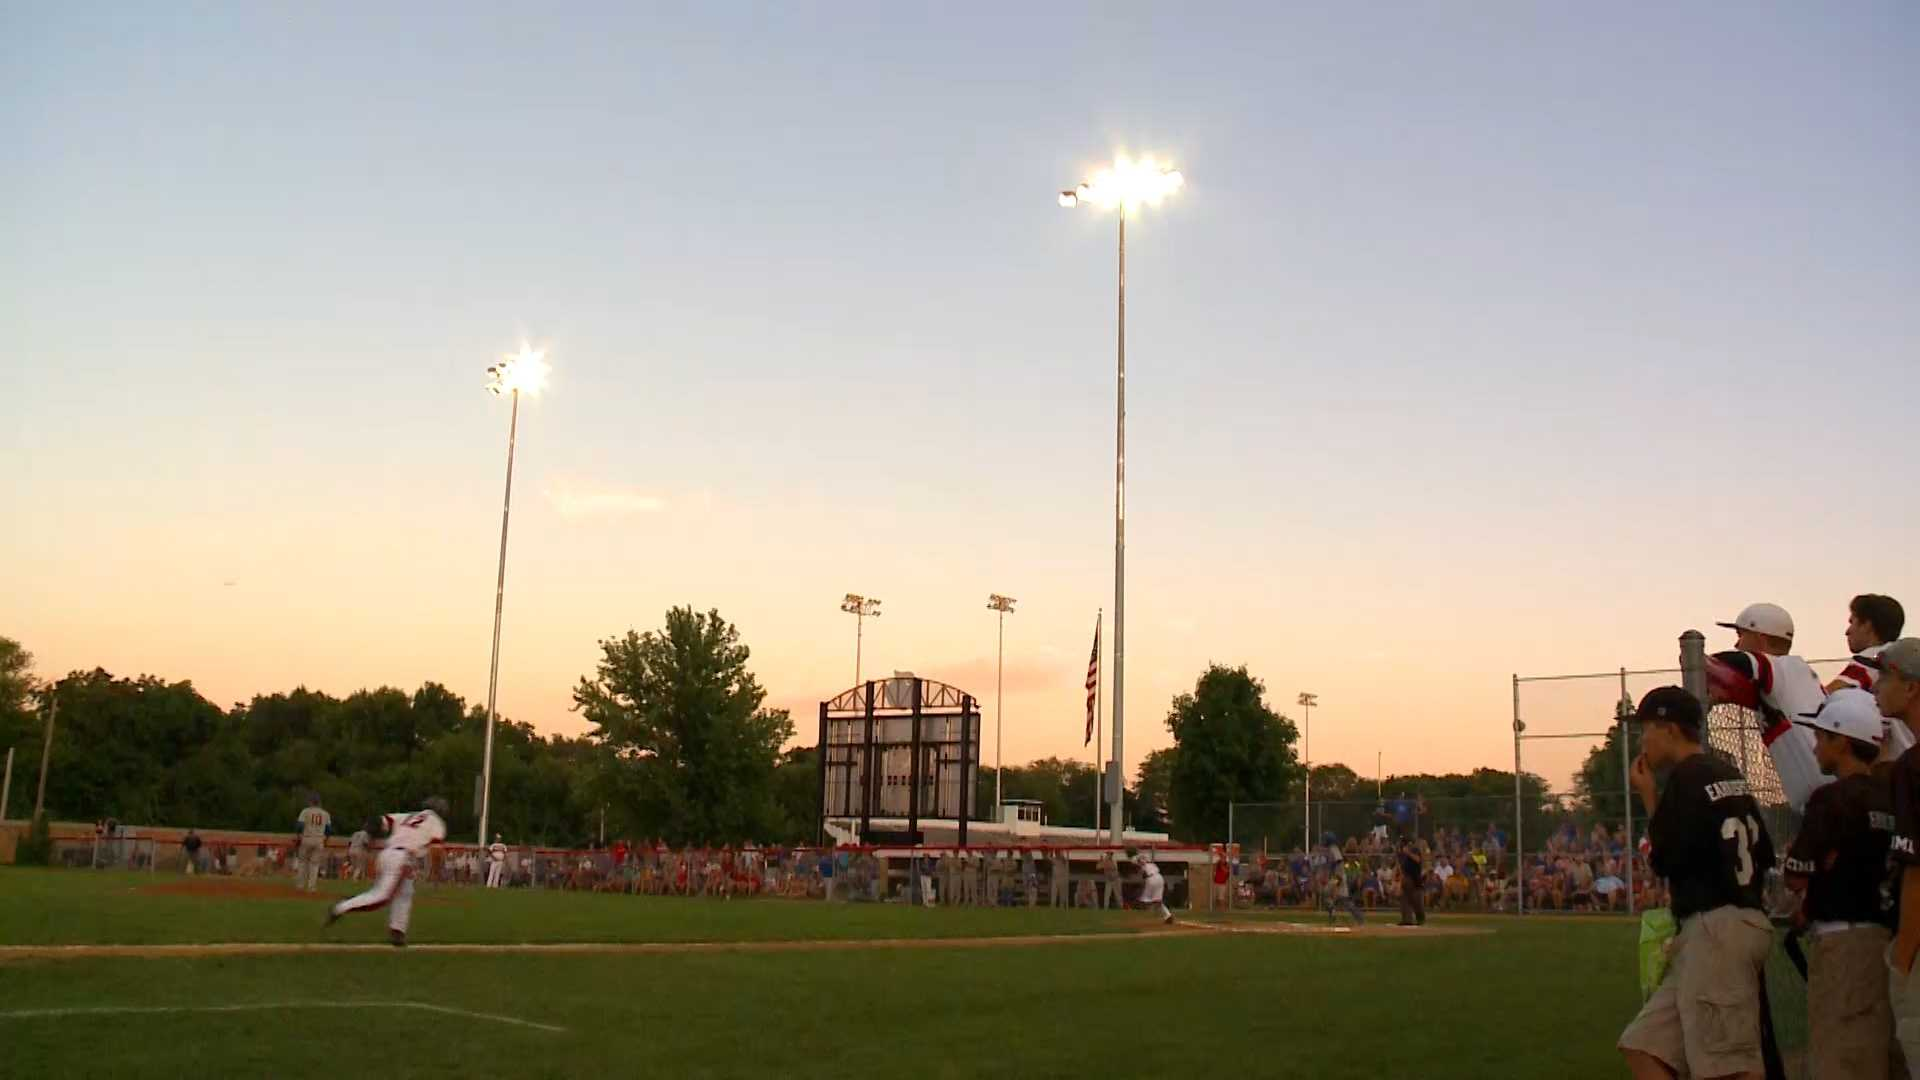 The Dodgers play under the lights at Ed McNeil Field for the first time on July 13, 2015